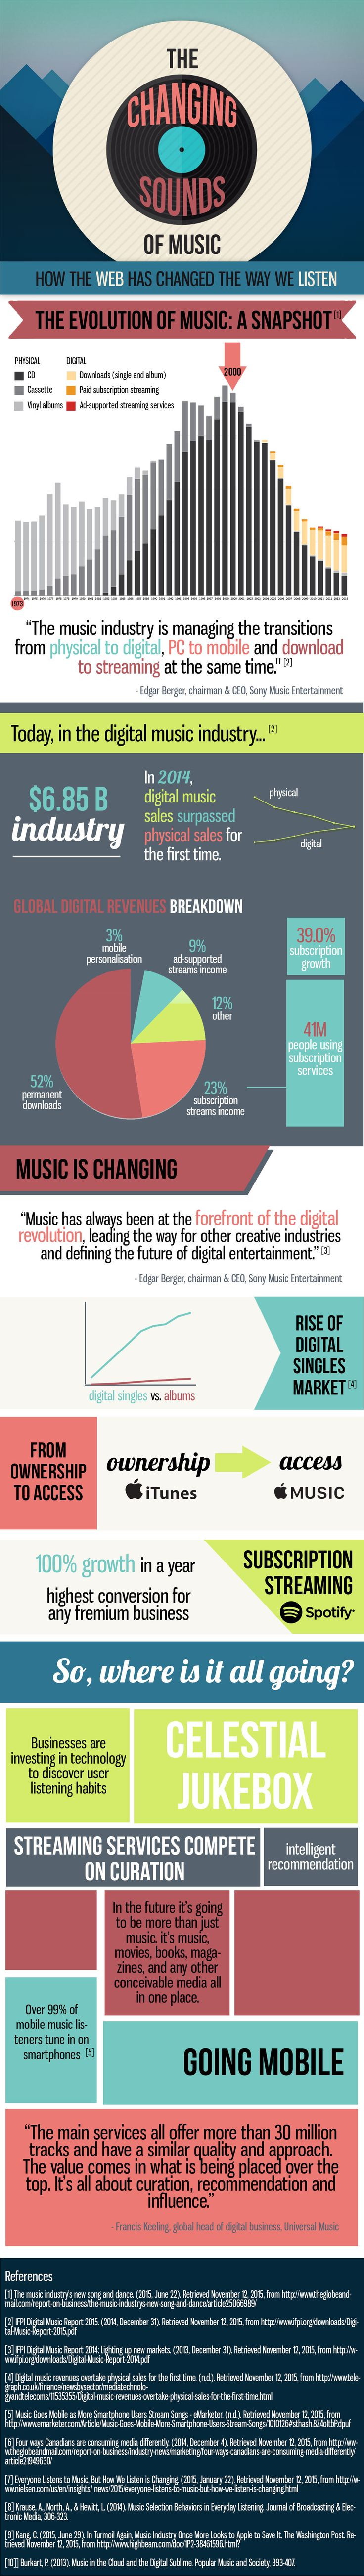 Infographic by Lily